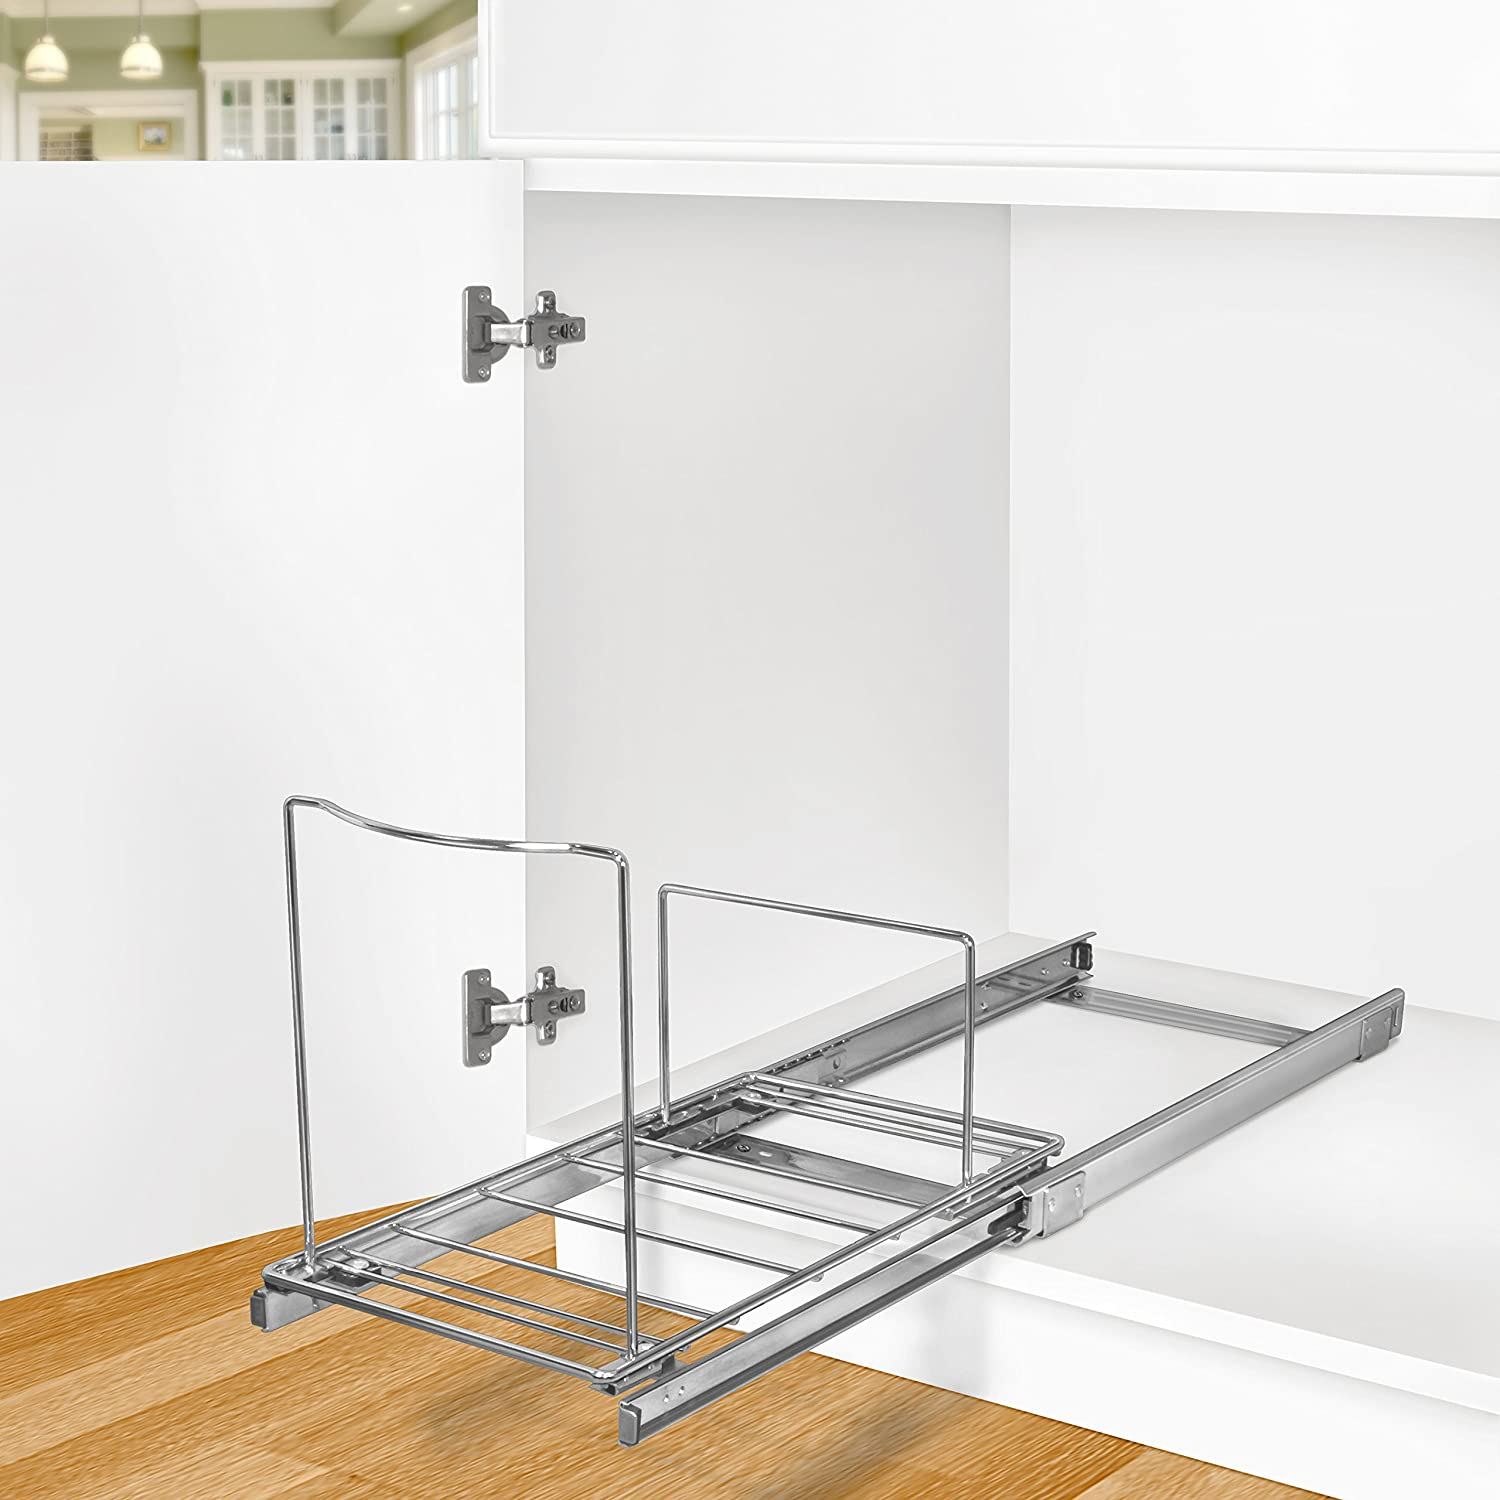 Lynk roll out under sink cabinet organizer pull out two tier sliding - Amazon Com Lynk Professional Roll Out Bin Holder Pull Out Under Cabinet Sliding Organizer Chrome